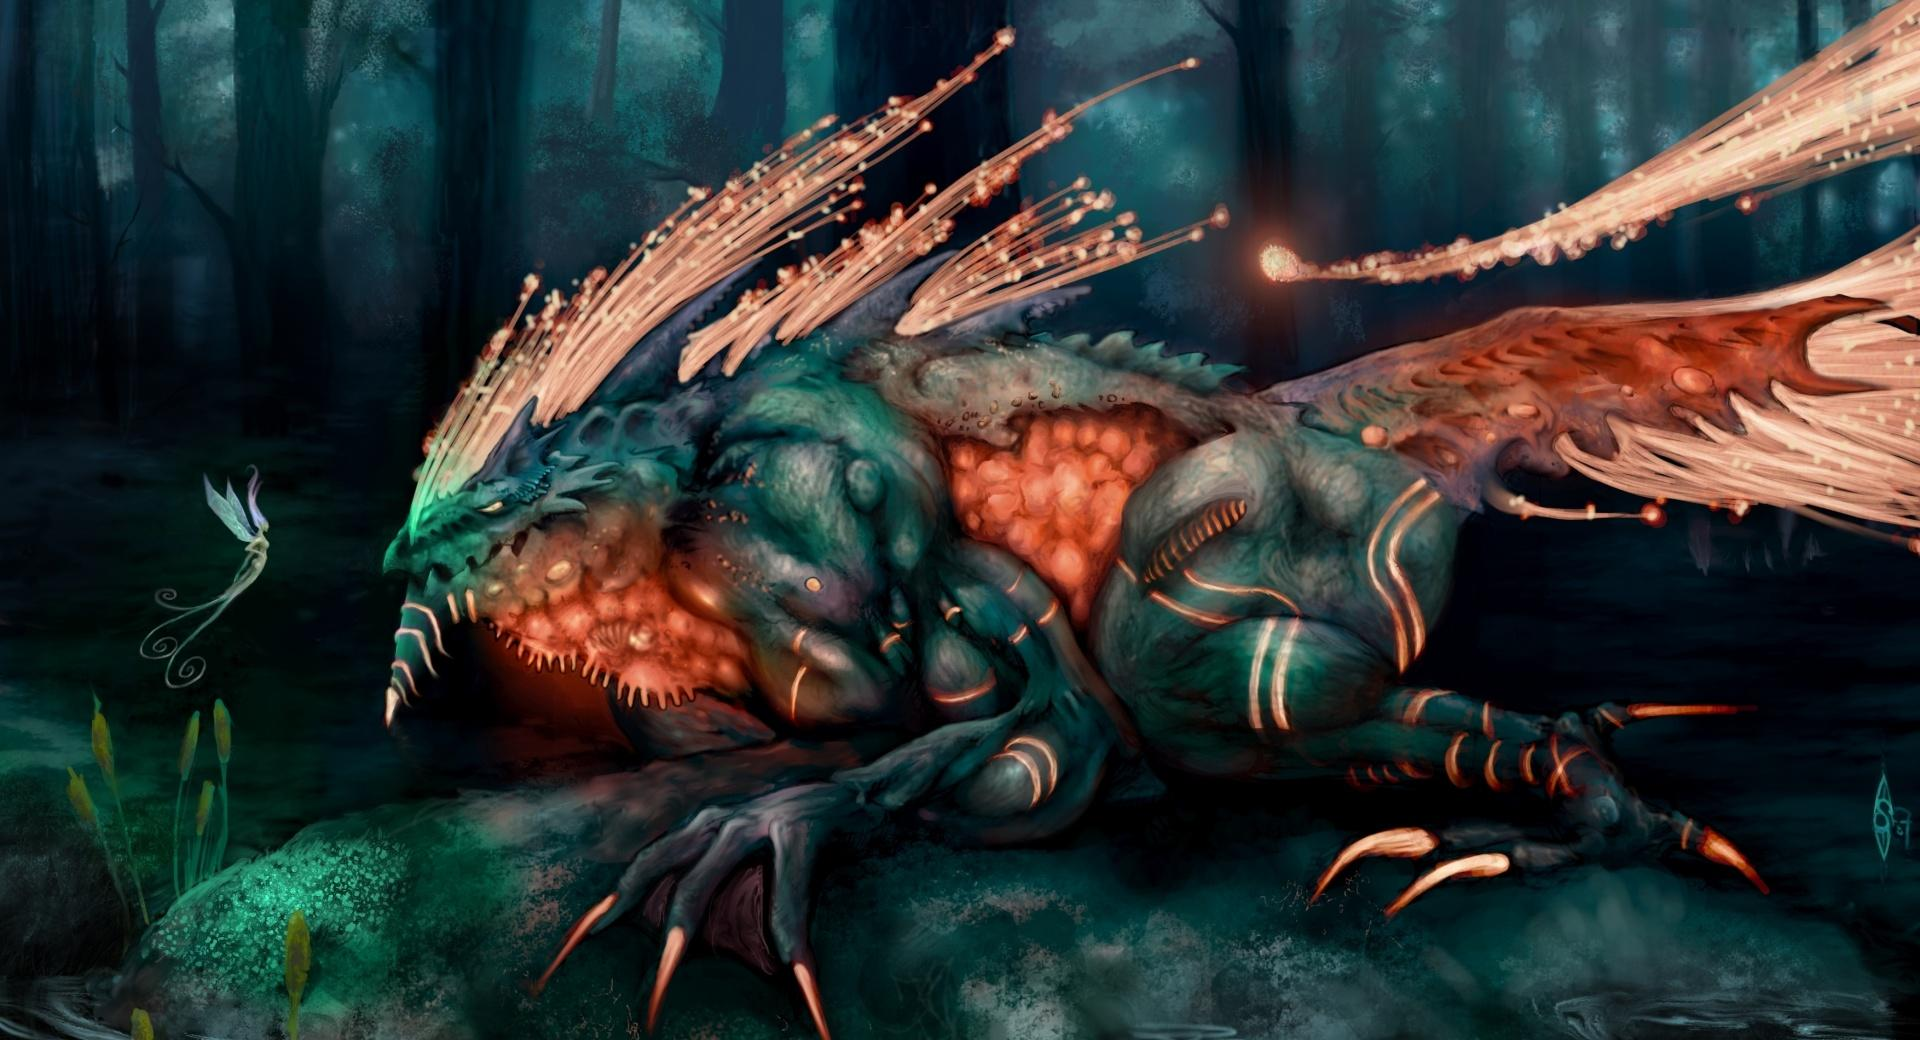 Monstrous Creature wallpapers HD quality